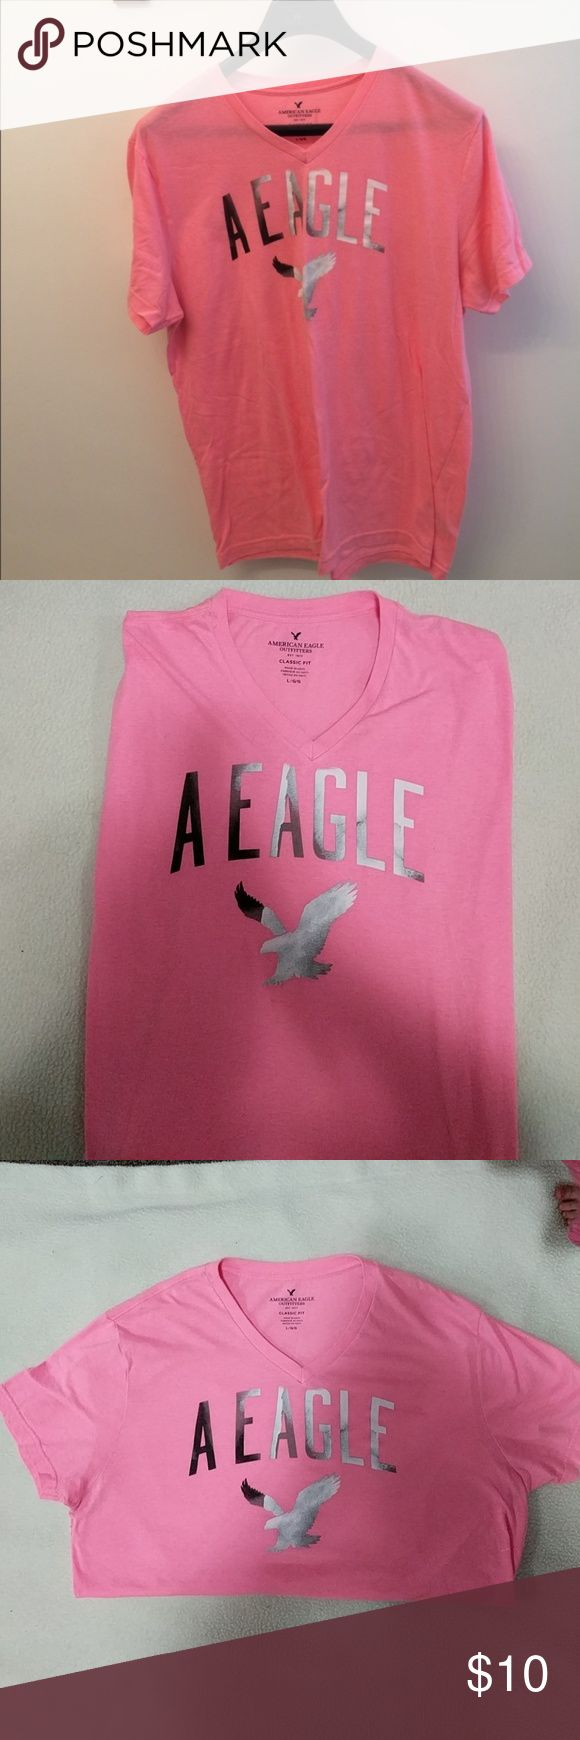 American Eagle Shirt NWOT Bright Pick American Eagle classic fit v-neck shirt, NWOT. American Eagle Outfitters Shirts Tees - Short Sleeve